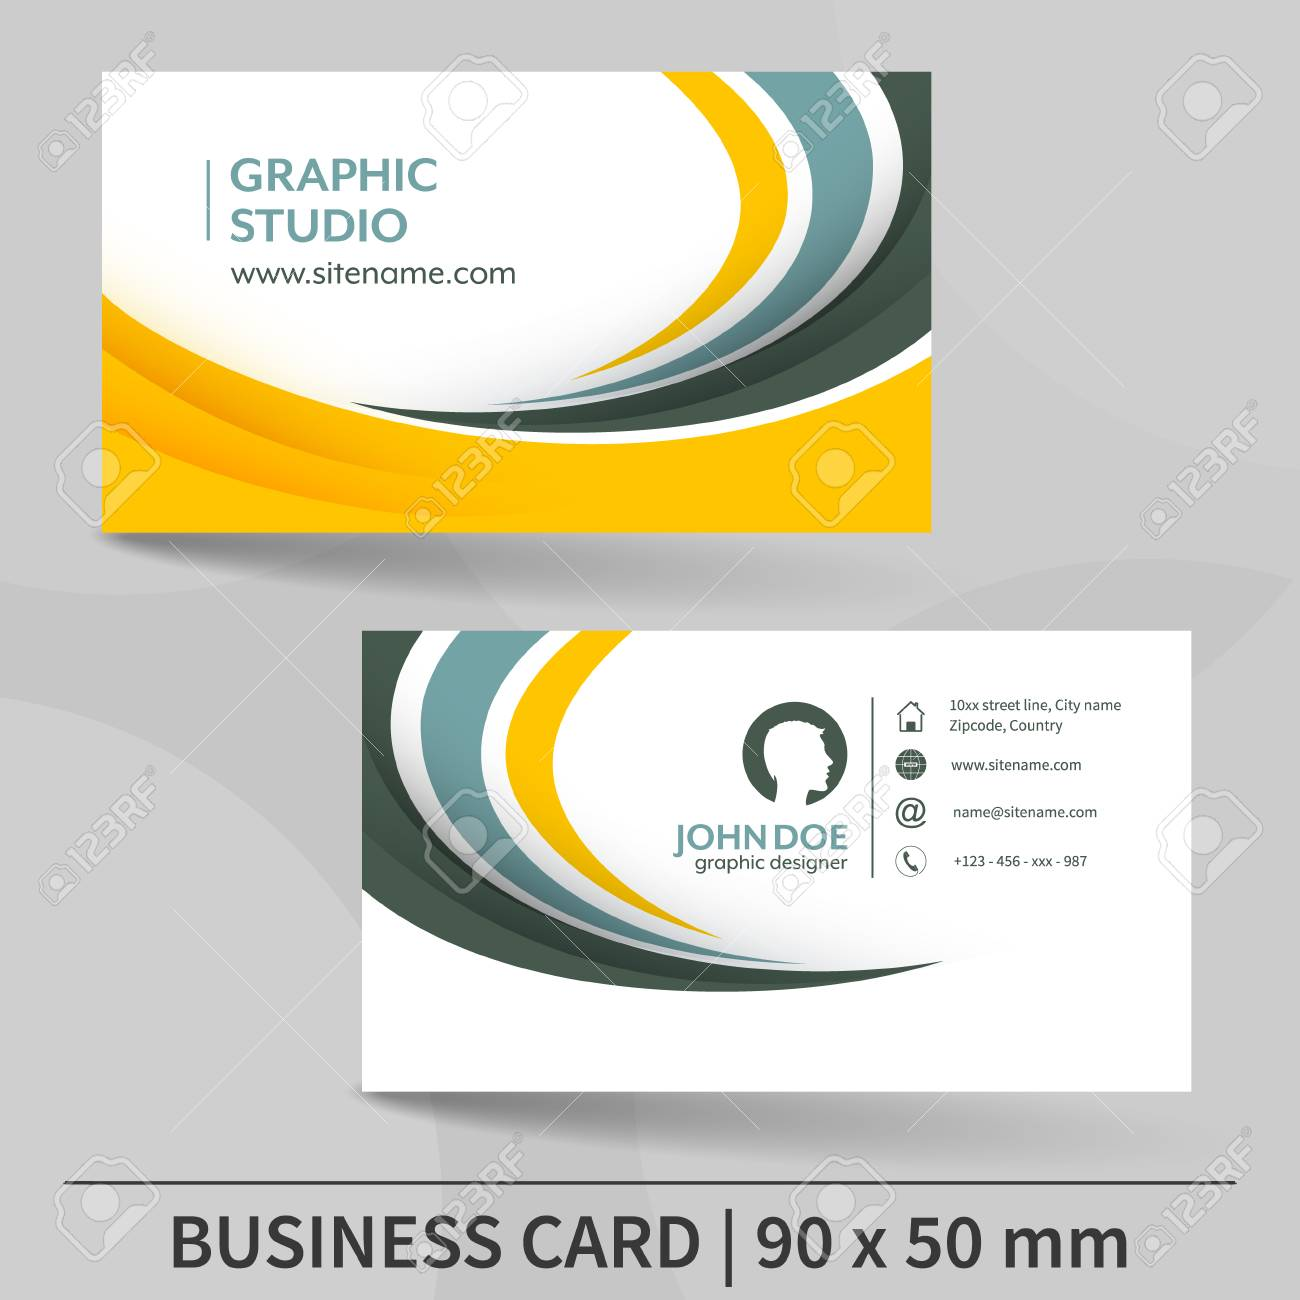 Business Card Template Design For Your Individual Or Business